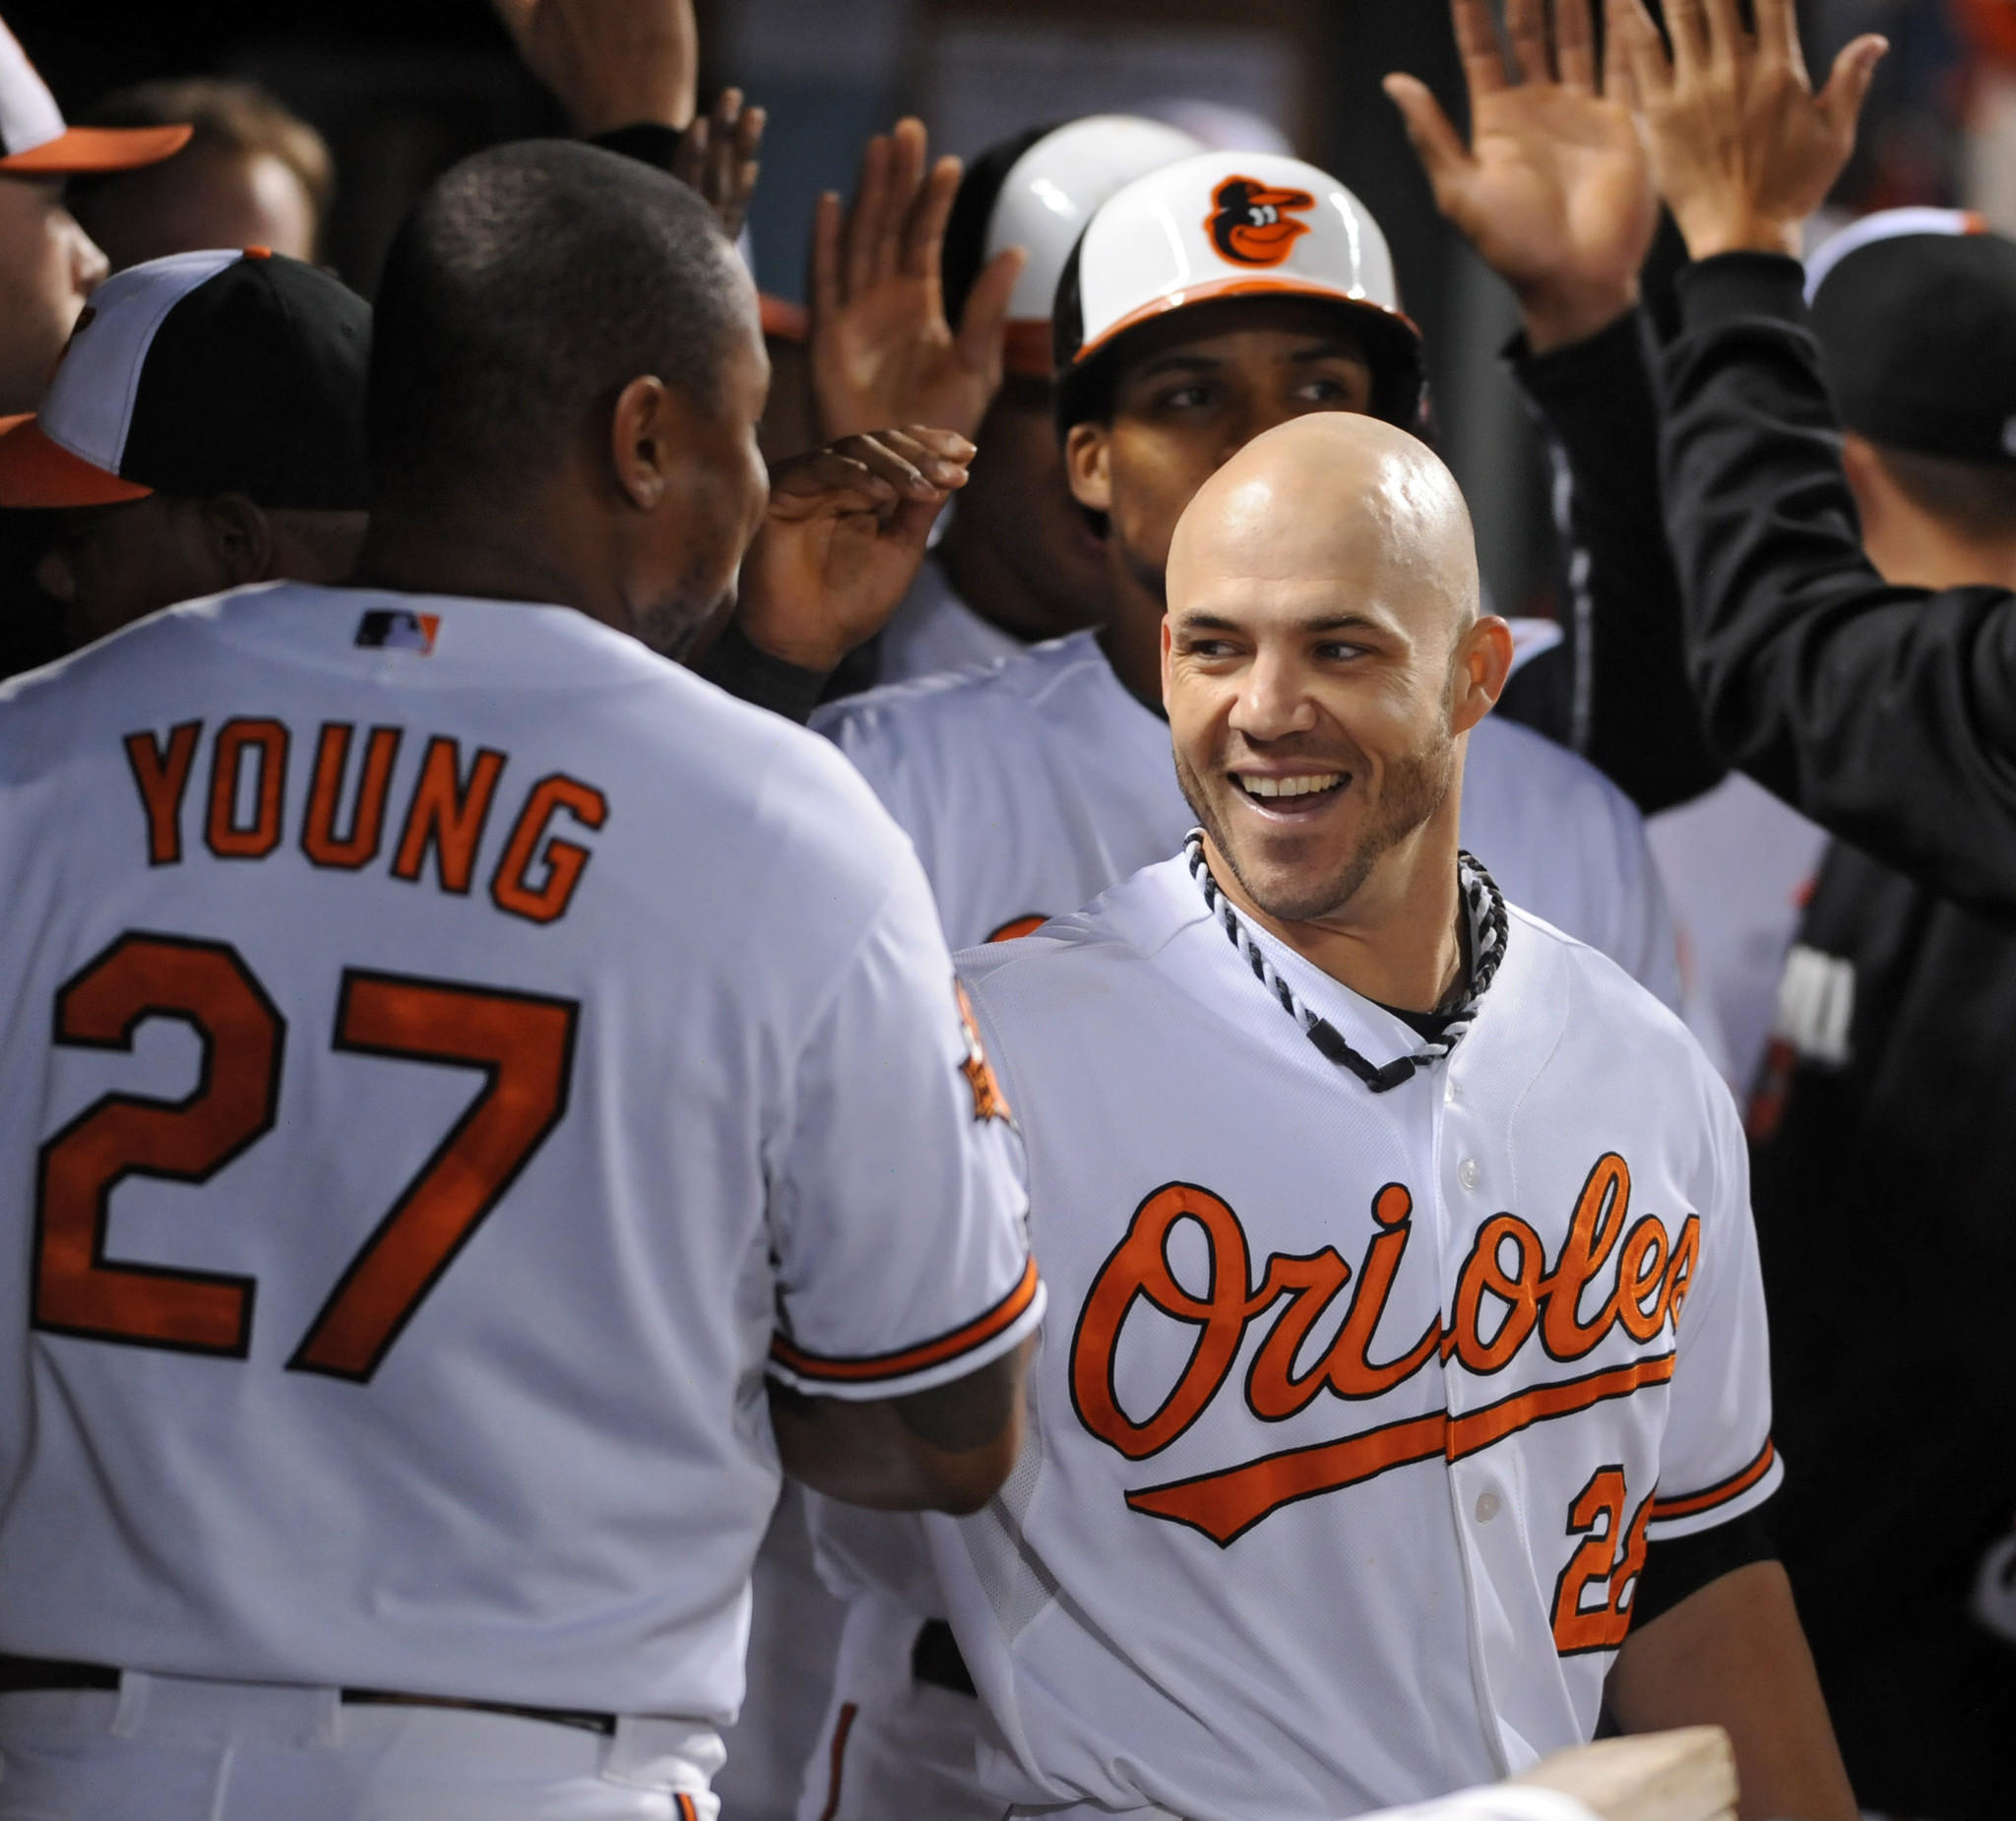 Steve Pearce, center, celebrates in the dug out after hitting a three-run home-run against the Blue Jays in the fifth inning at Oriole Park at Camden Yards.